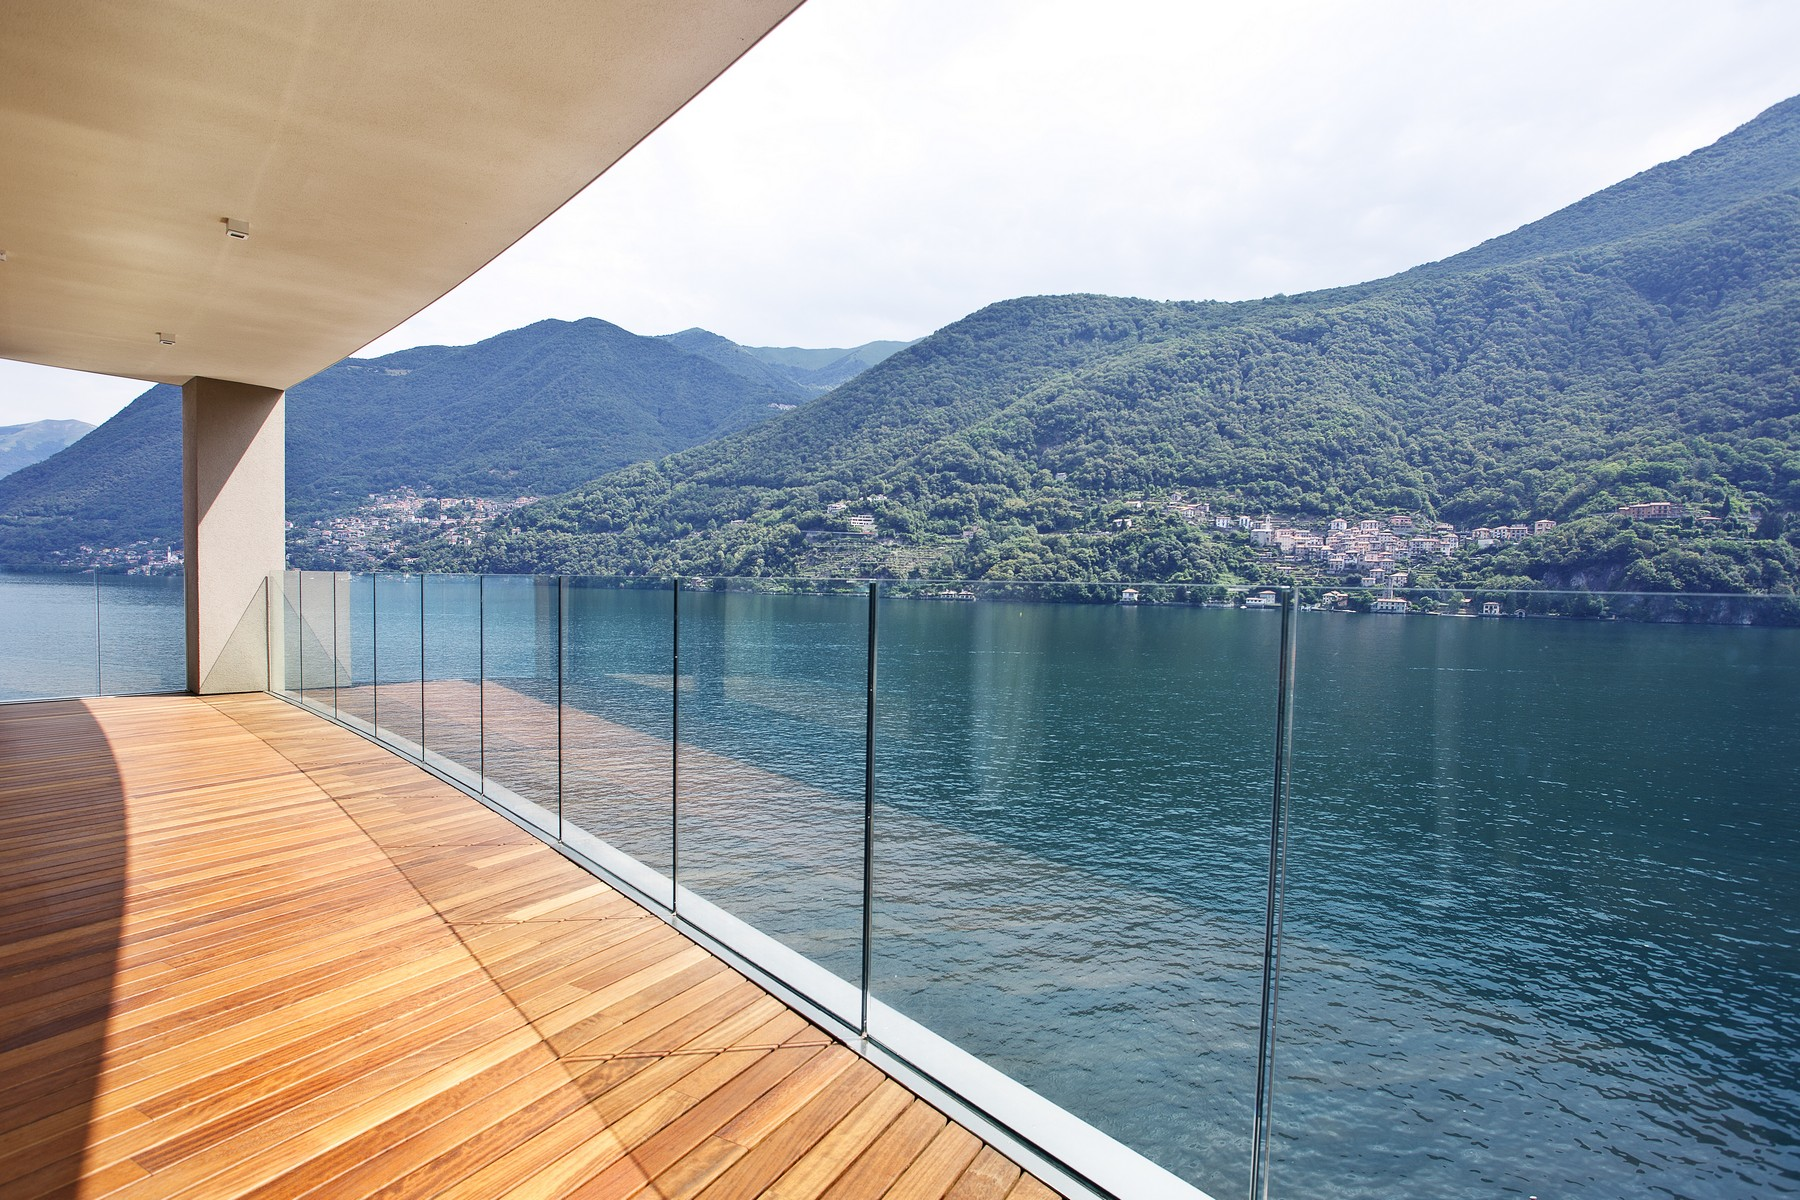 Apartment for Sale at Wonderful apartment in new building on Lake Como Via Nuova Regina Laglio, 22010 Italy